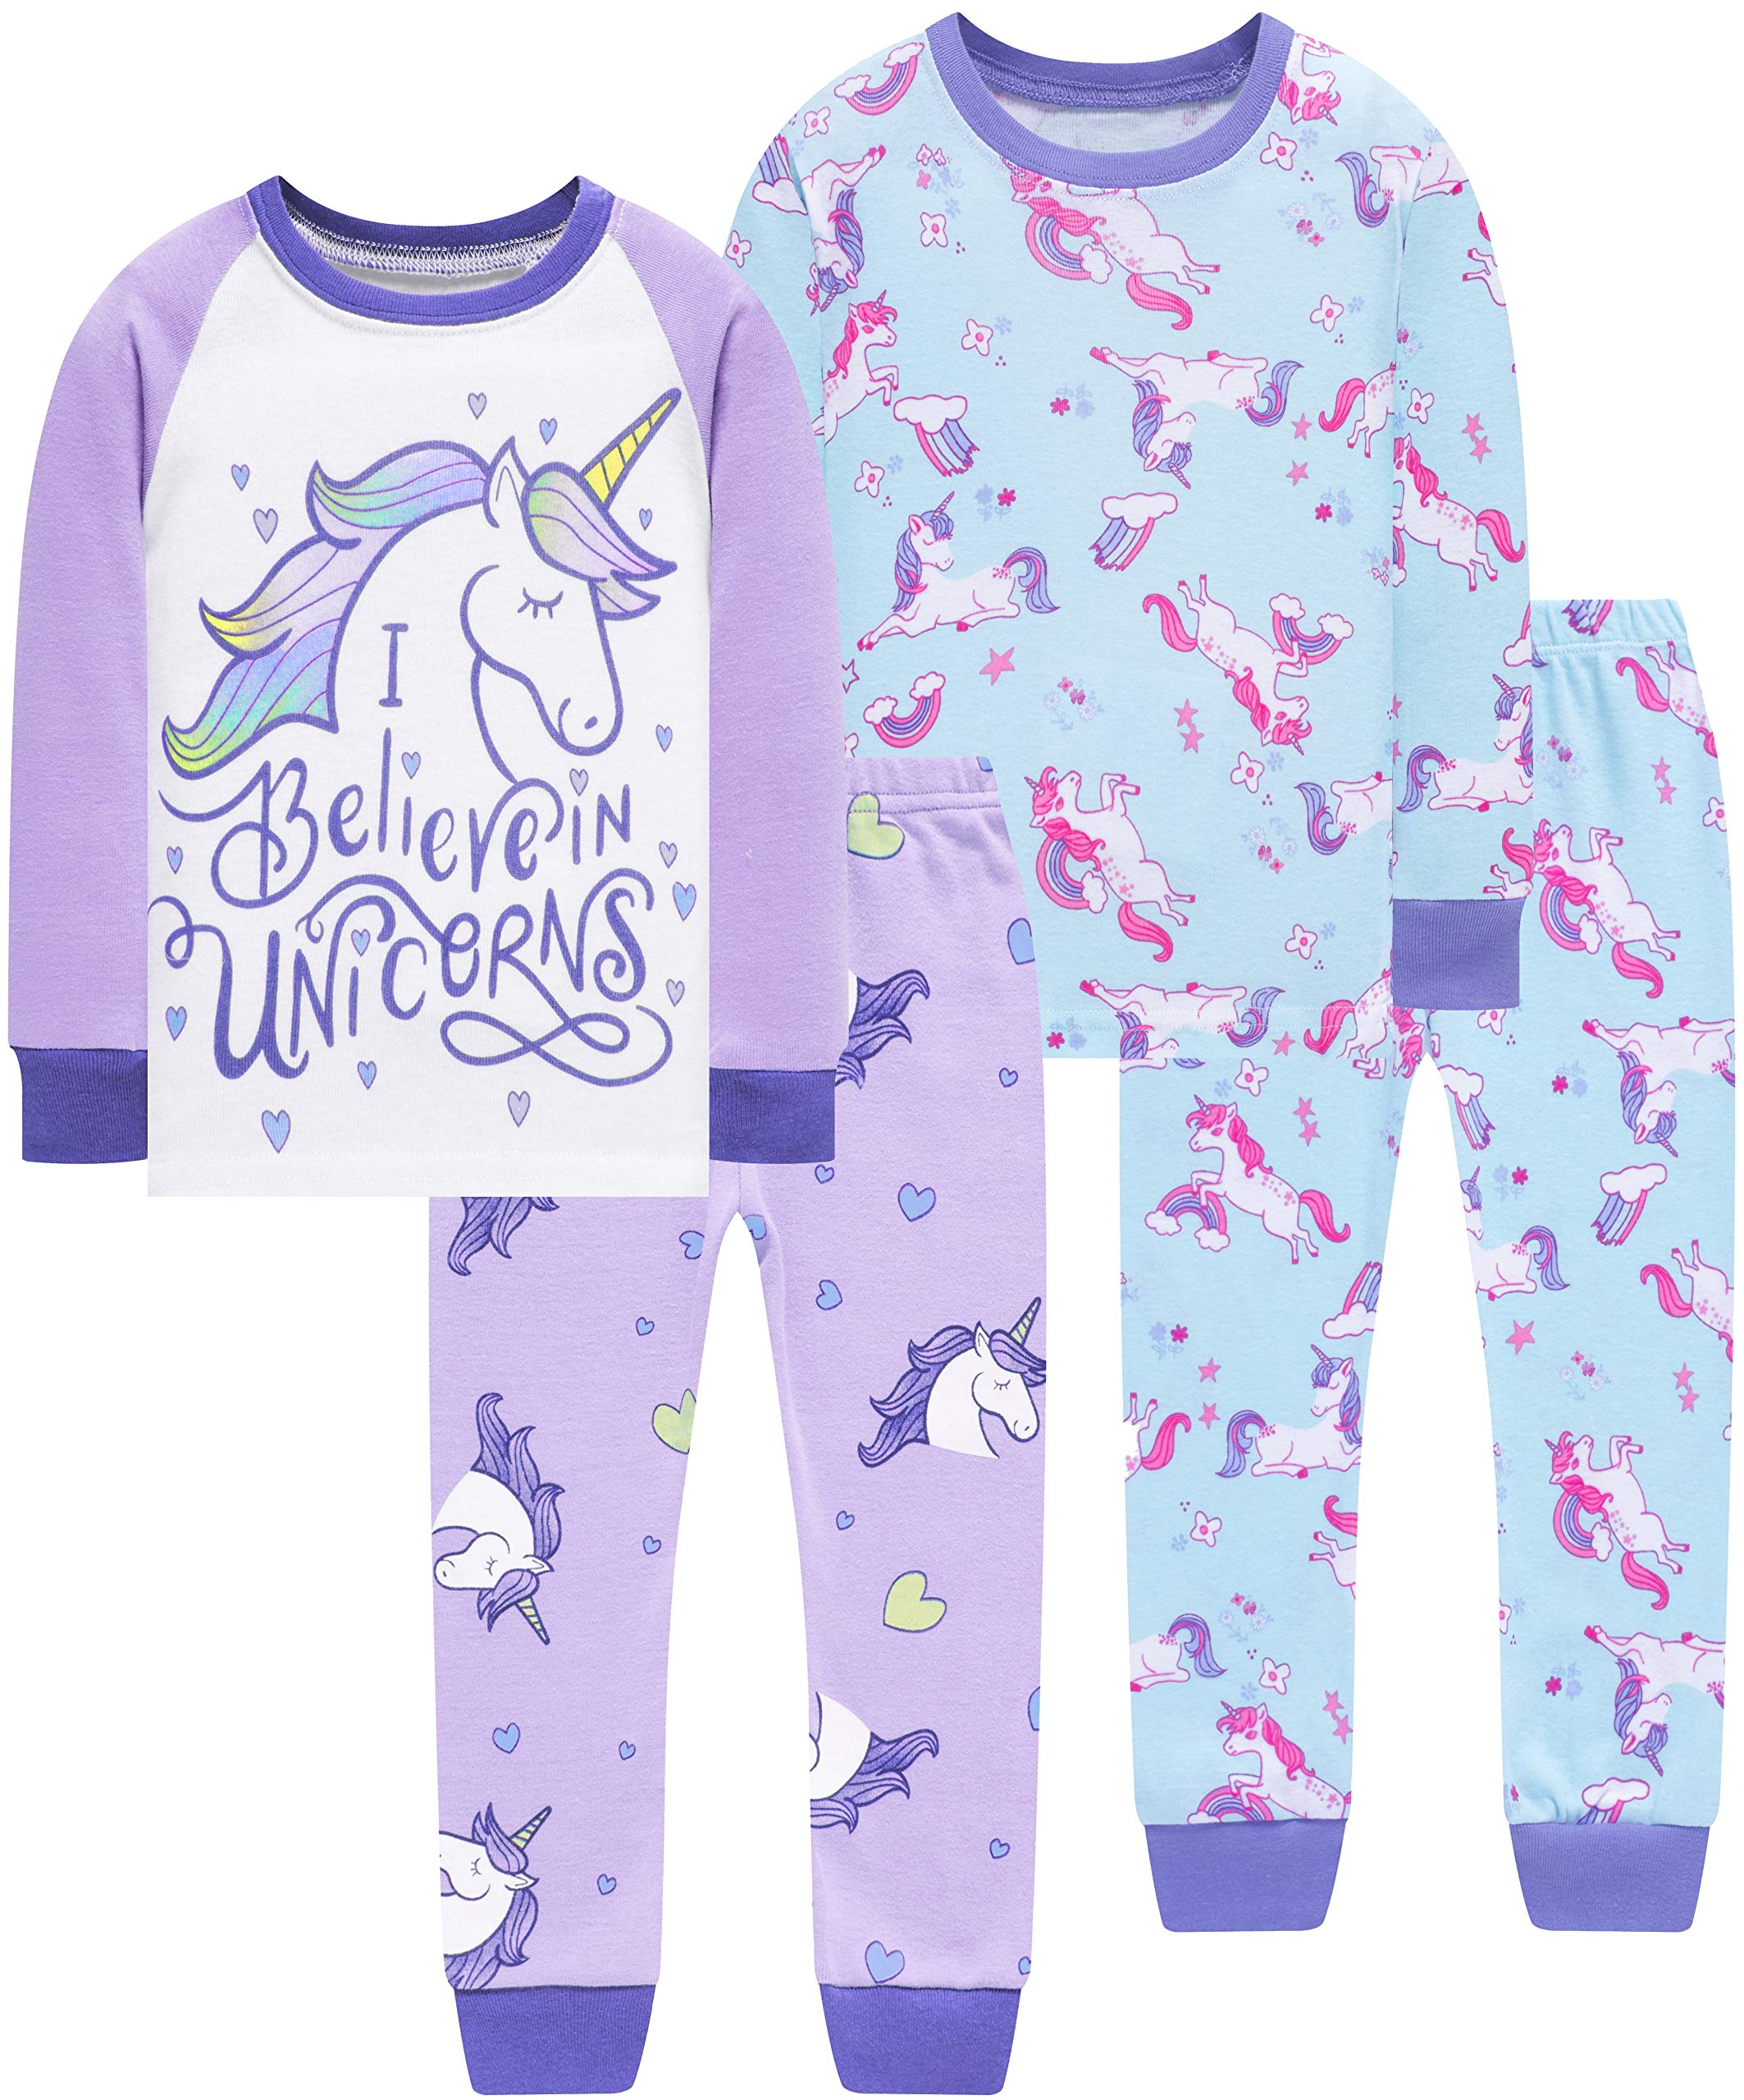 Image of Long Sleeve 4 Pc. Cotton Unicorn Pajama Sets for Girls - See More Styles